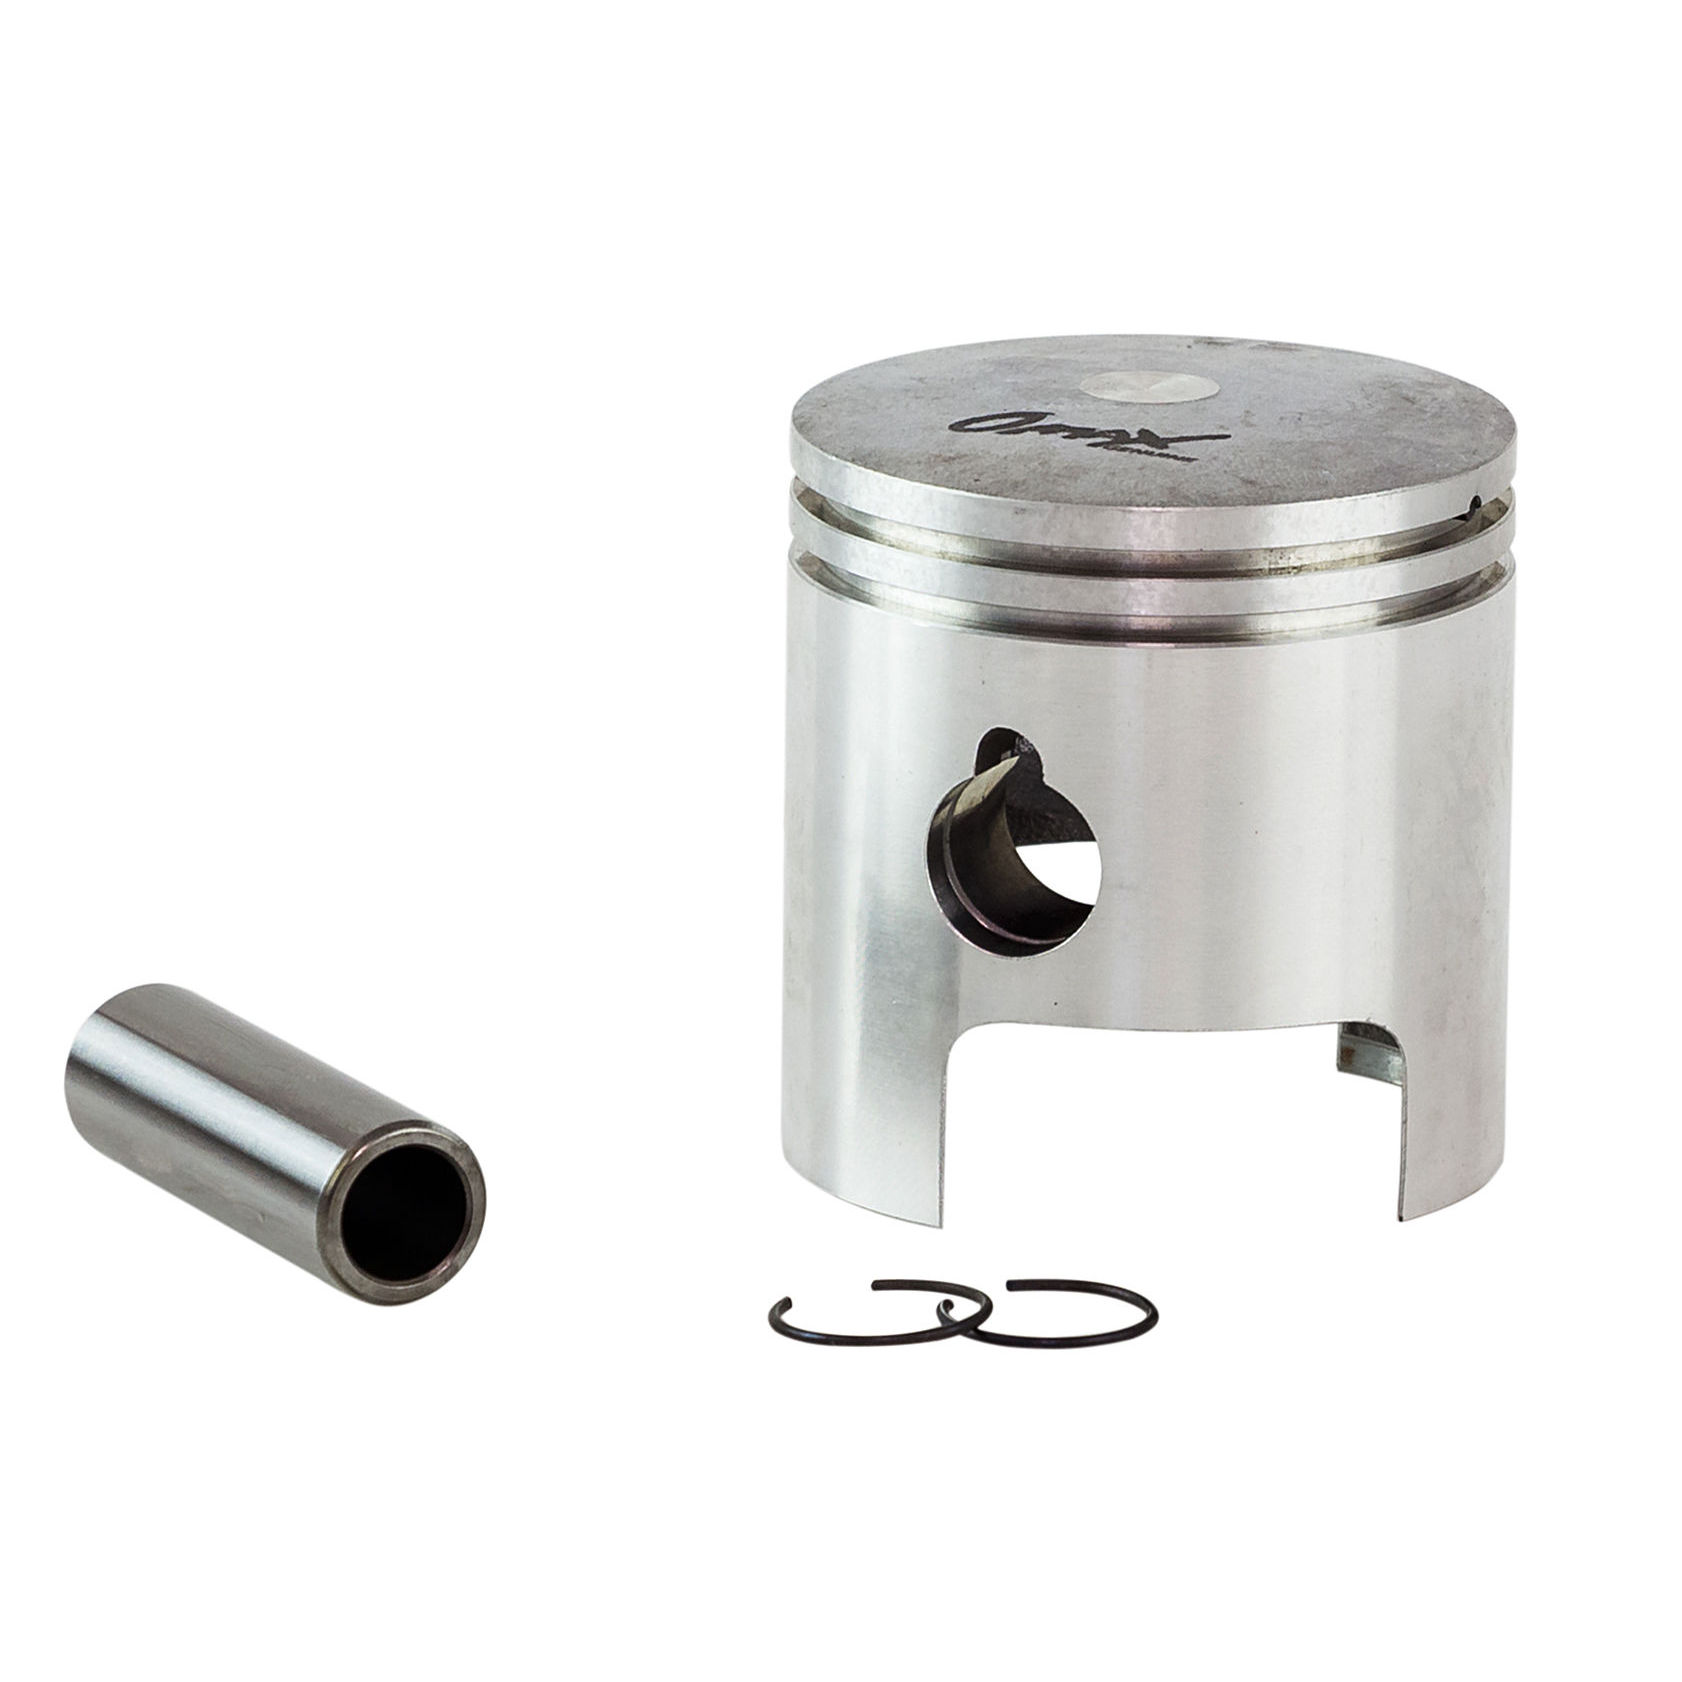 Piston Tohatsu/Mercury 9.9-15, STD, OMAX 351000011_om